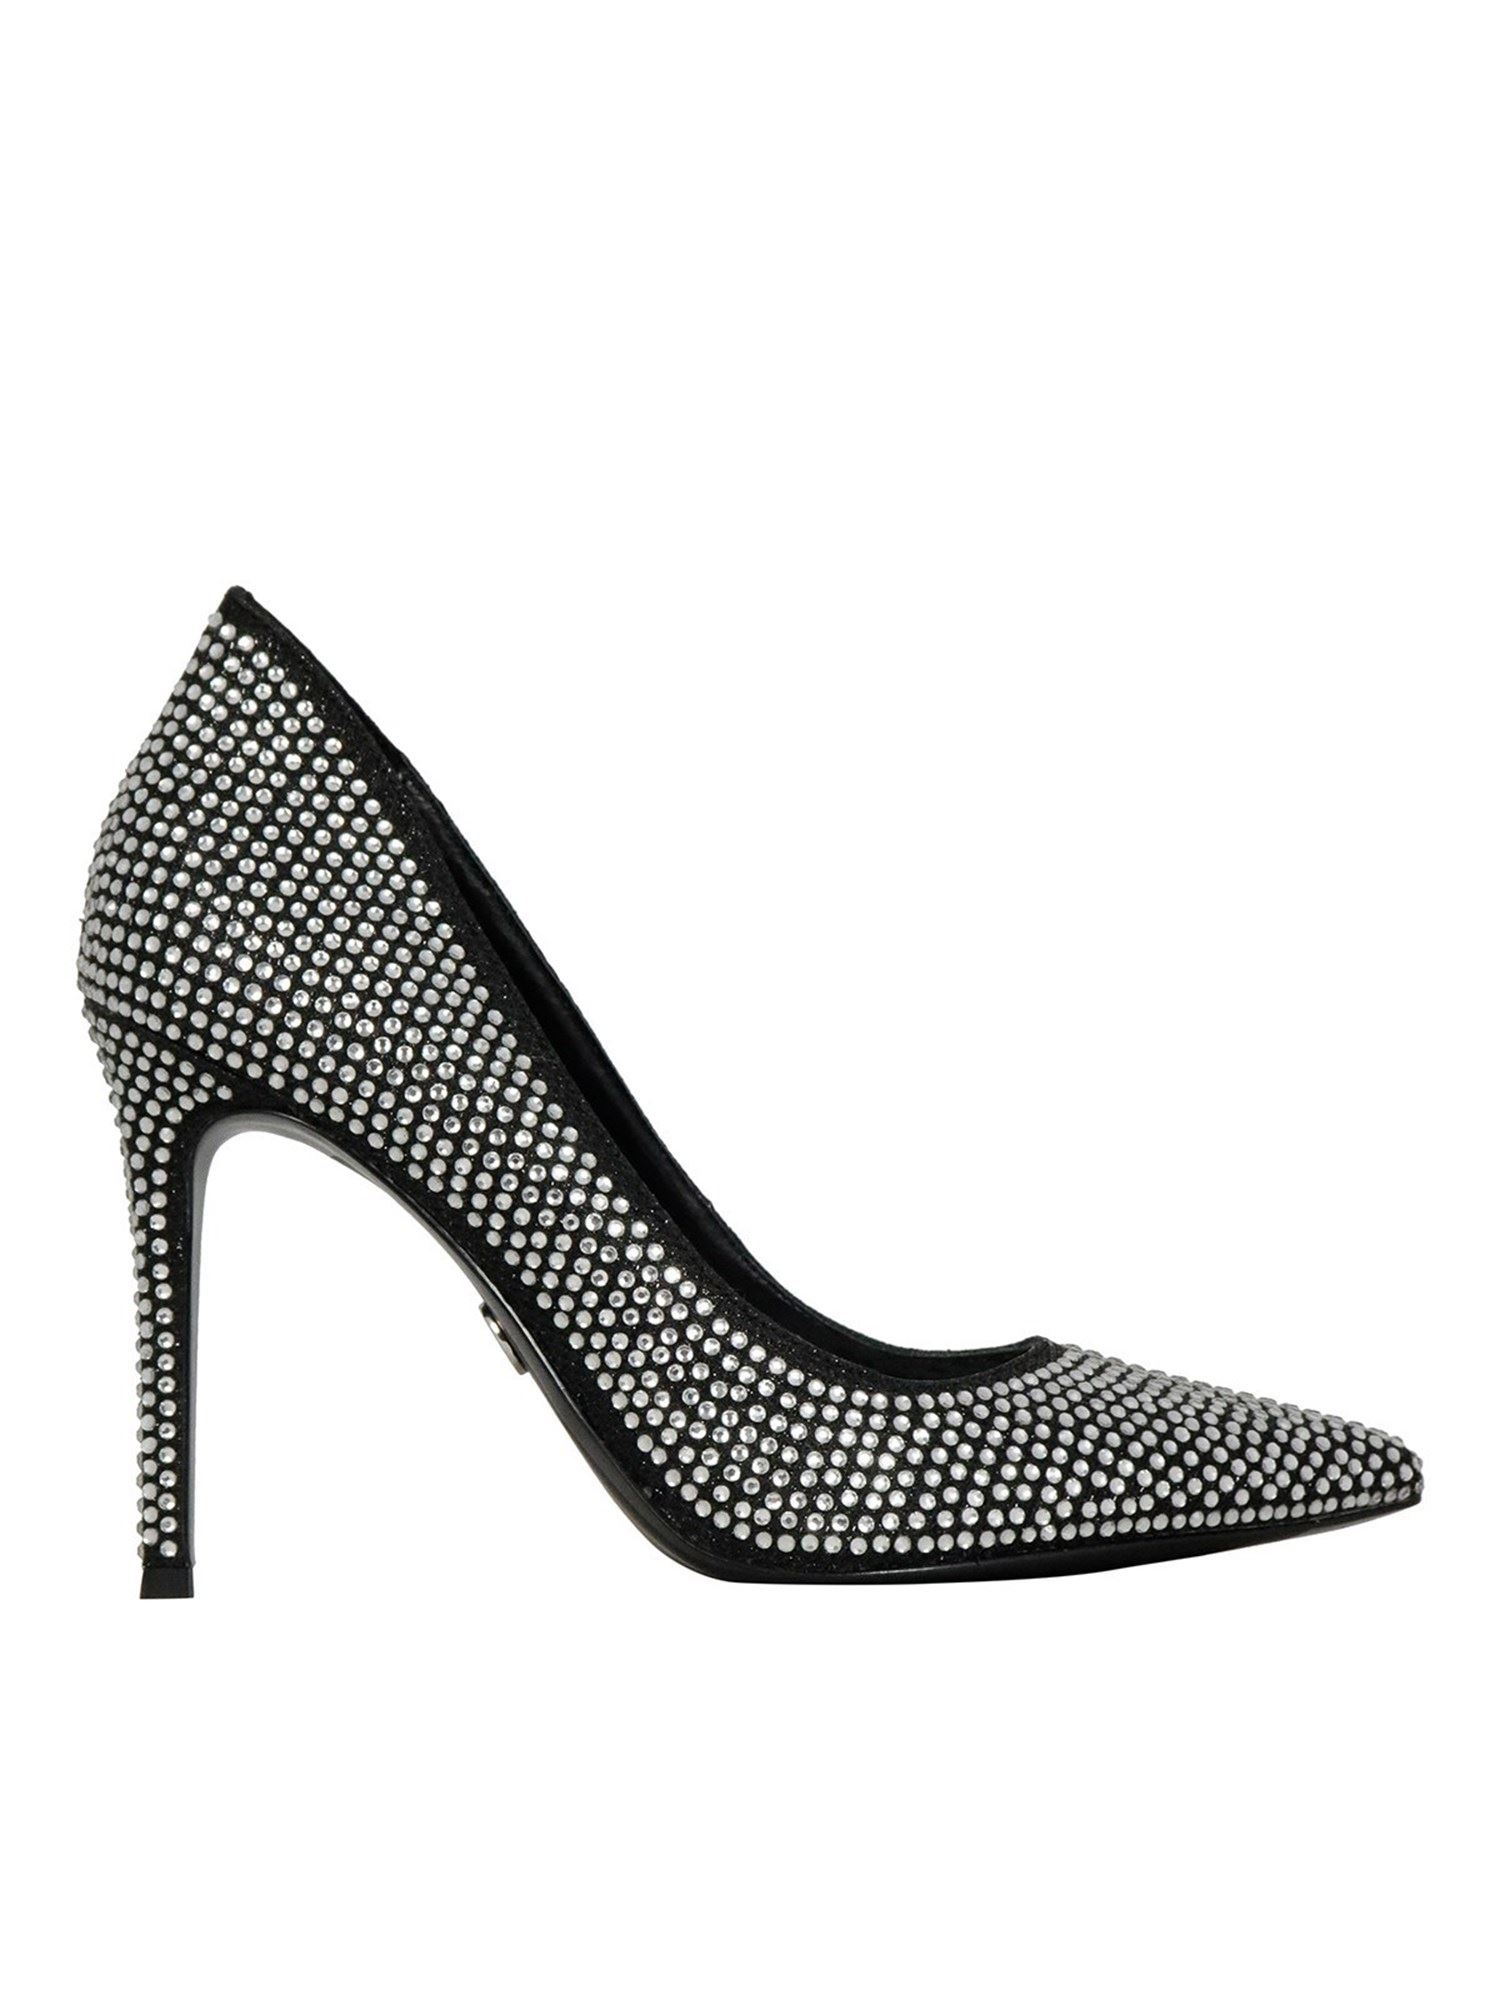 Michael Kors KEKE 100 PUMPS IN BLACK